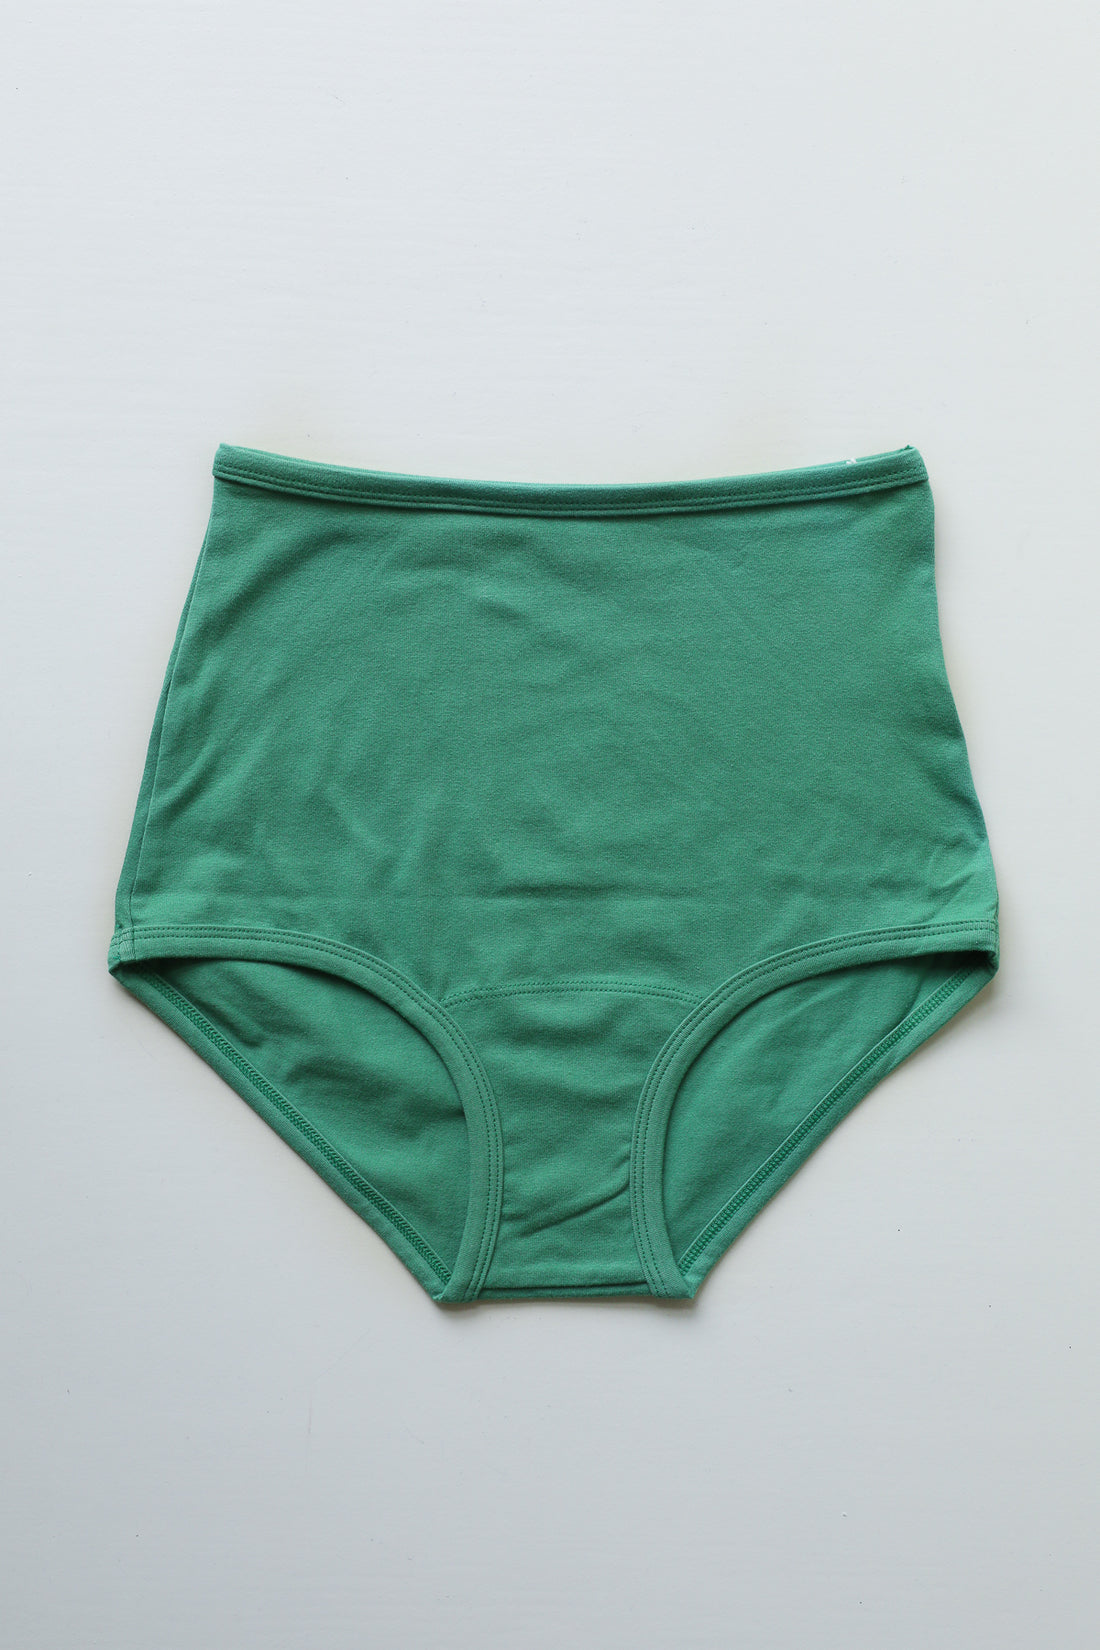 HIGH RISE UNDIES IN VERDANT